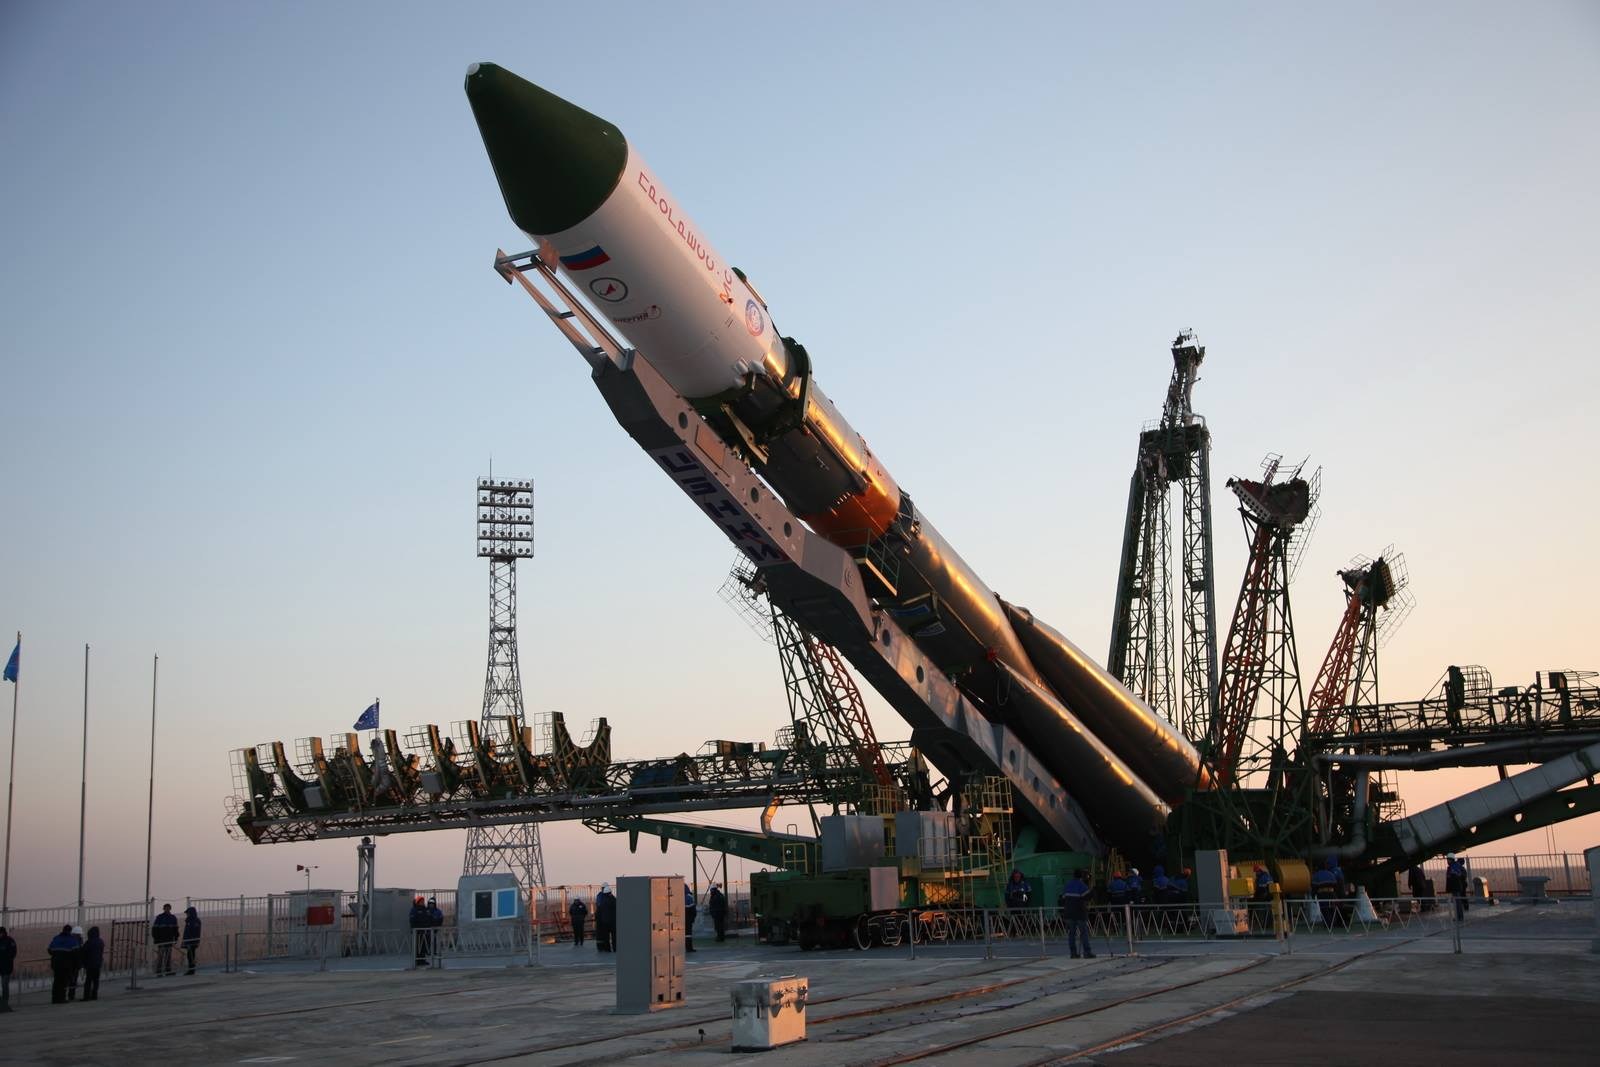 Soyuz-U / Progress MS-04 being erected on the launch pad